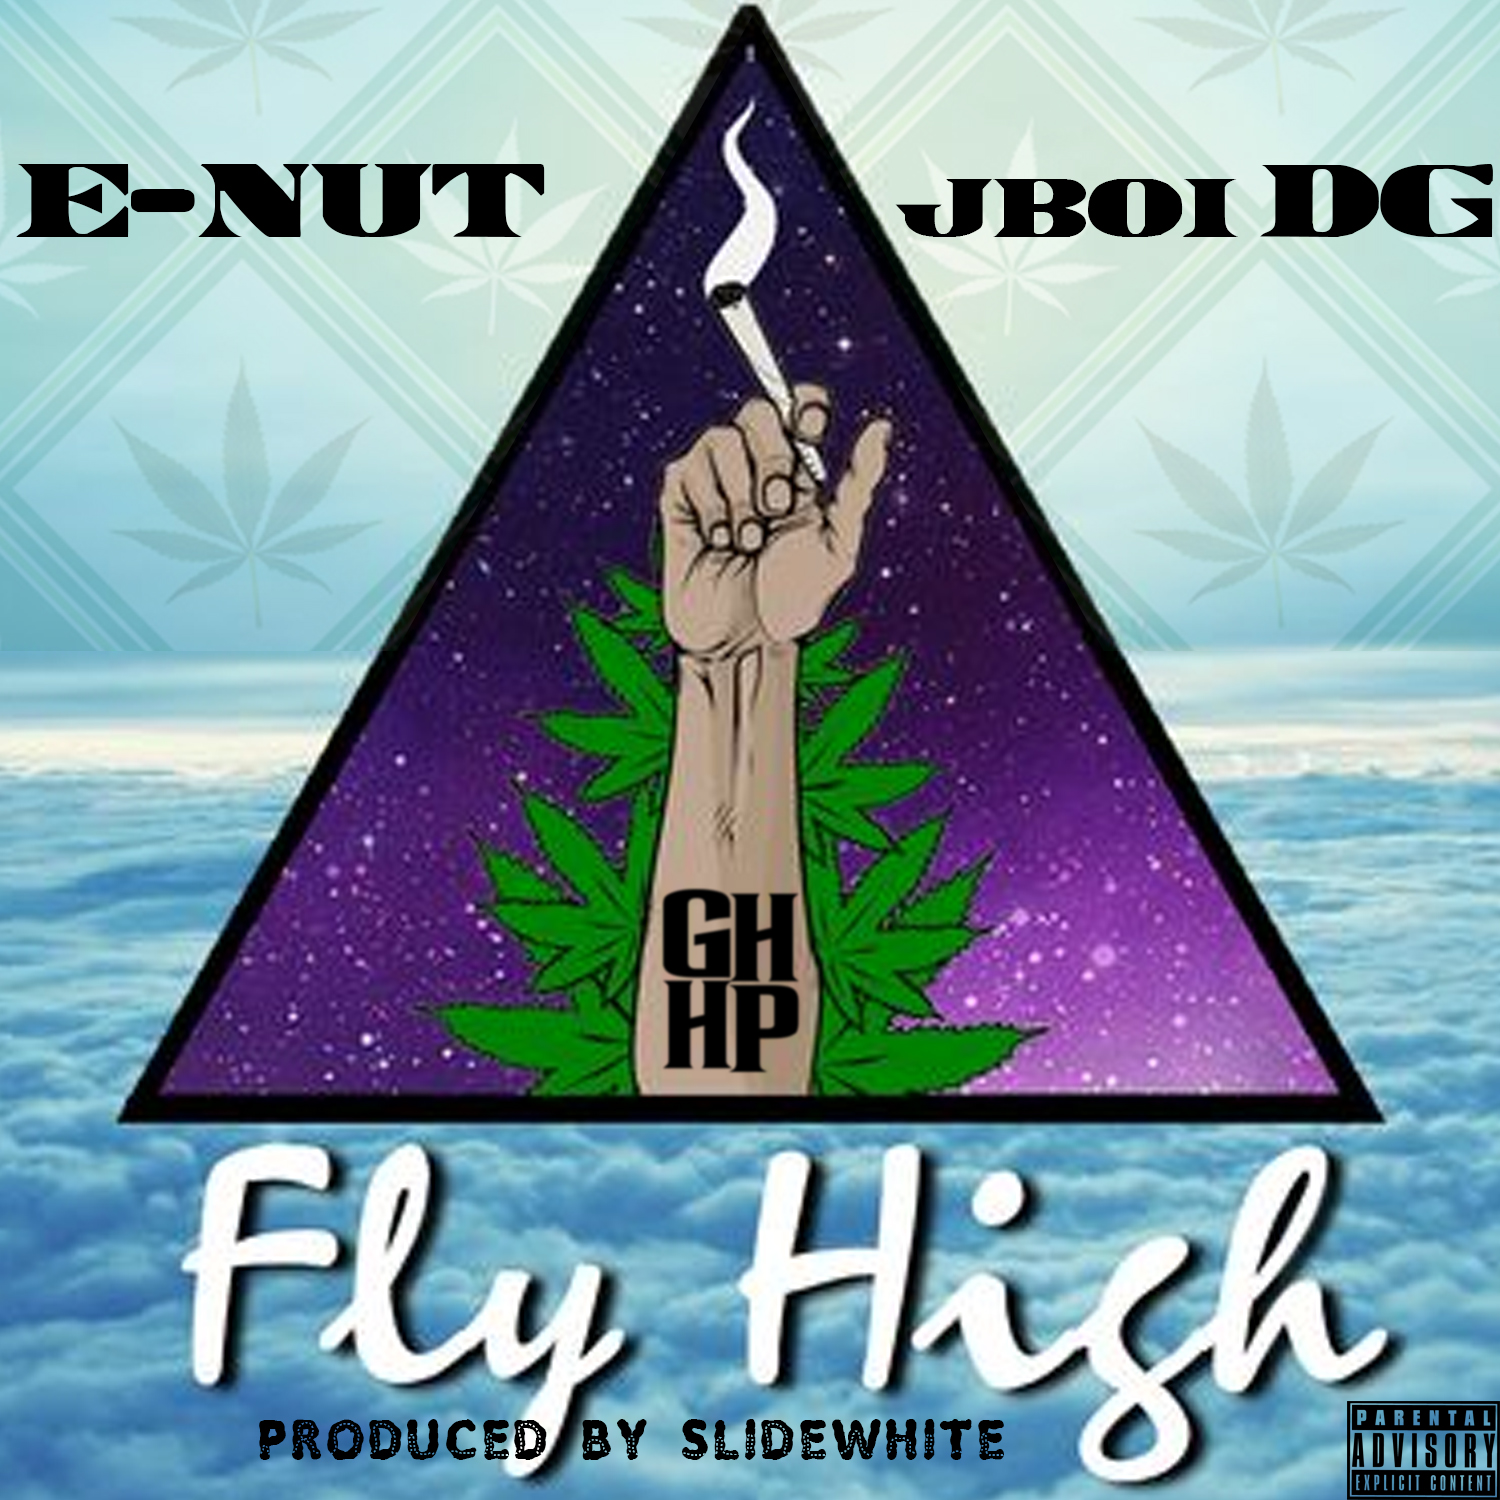 E-Nut ft. JBoi DG - Fly High (Produced by Slidewhite) [Thizzler.com]